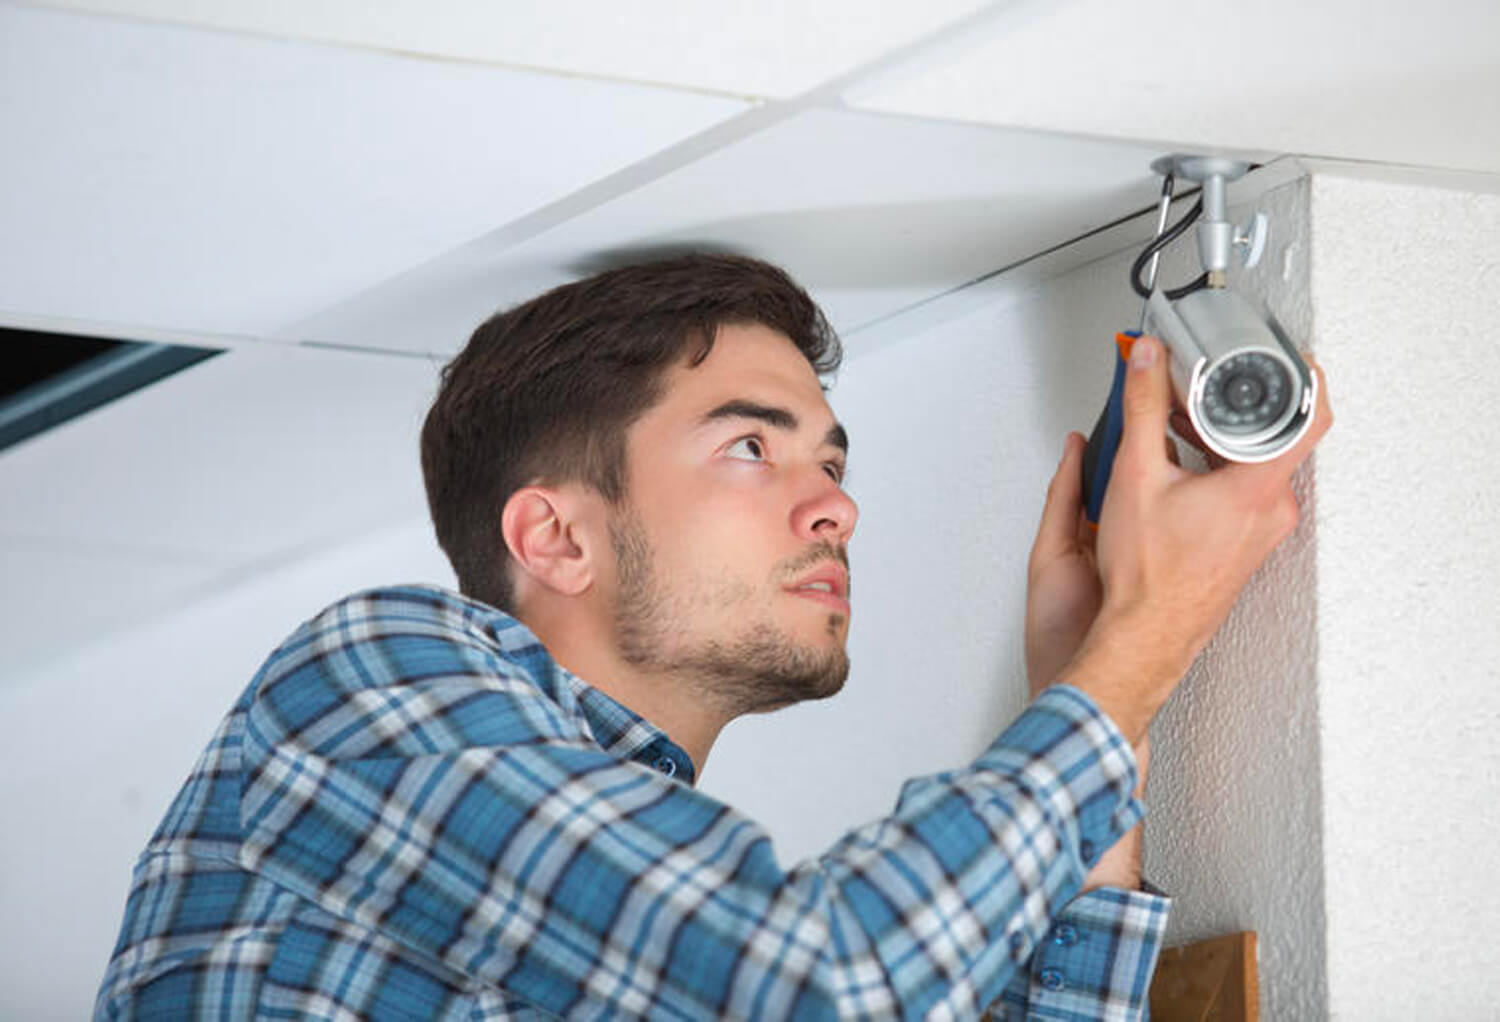 Man installing security camera on ceiling